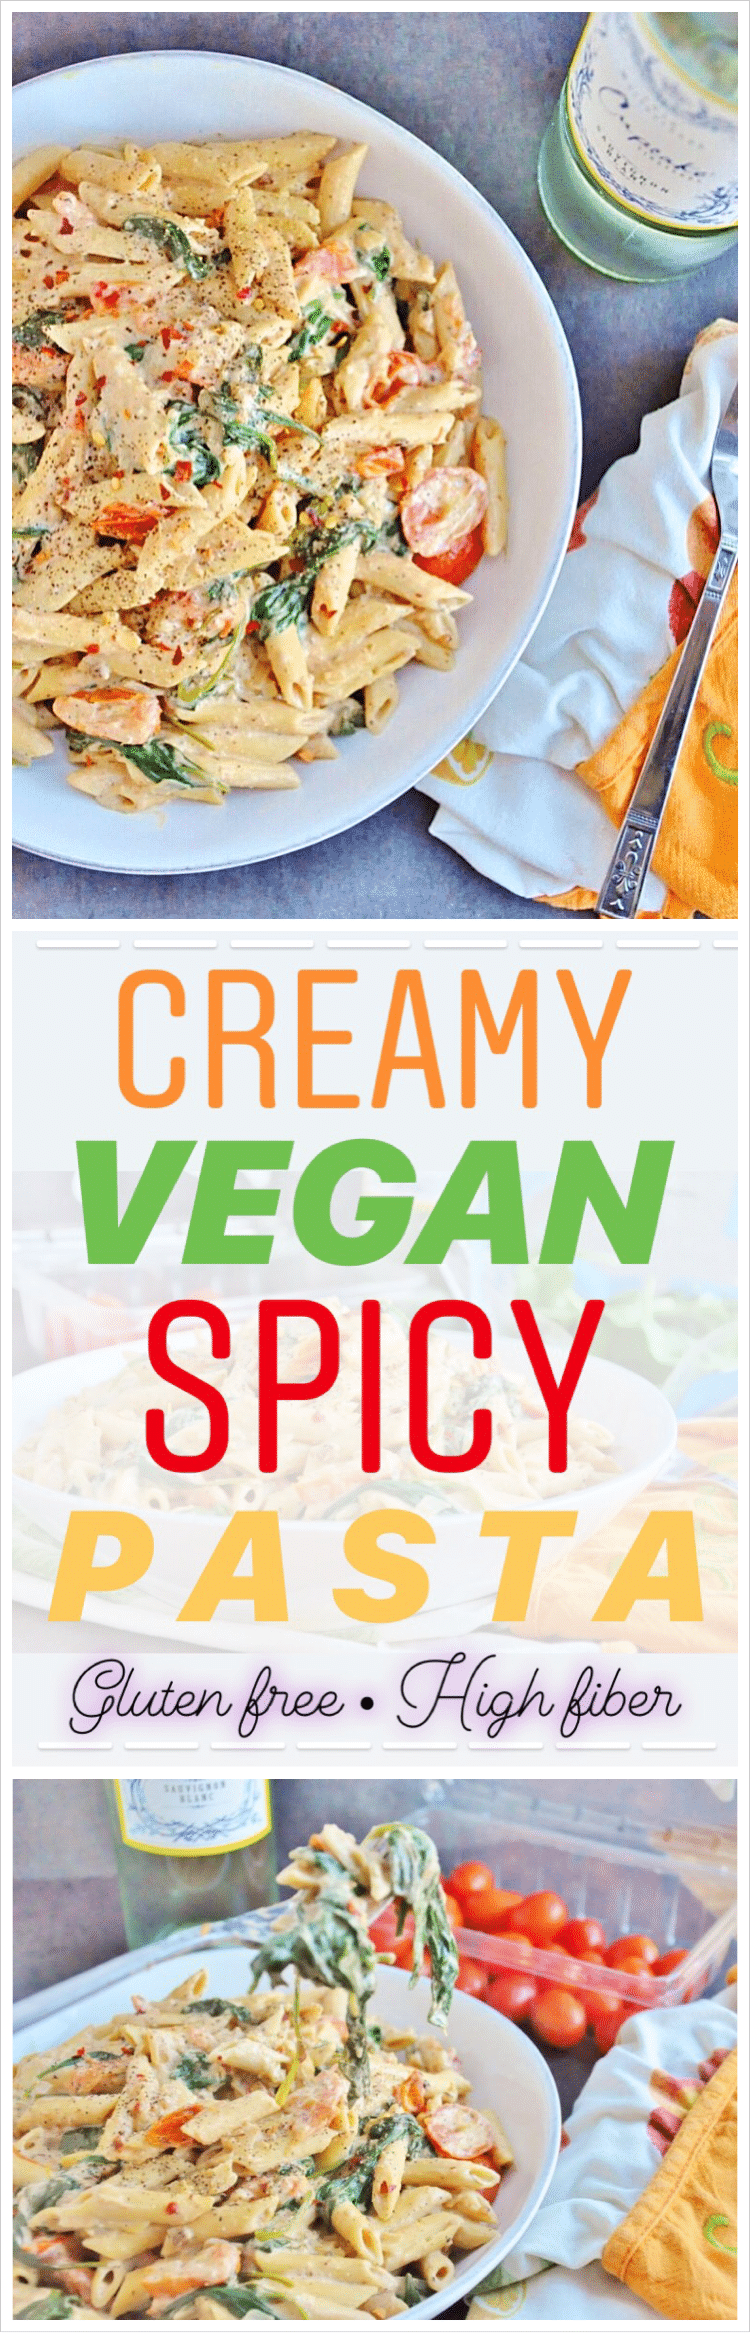 Creamy spicy vegan pasta gluten free high fiber honey whats pin creamy spicy vegan pasta forumfinder Images